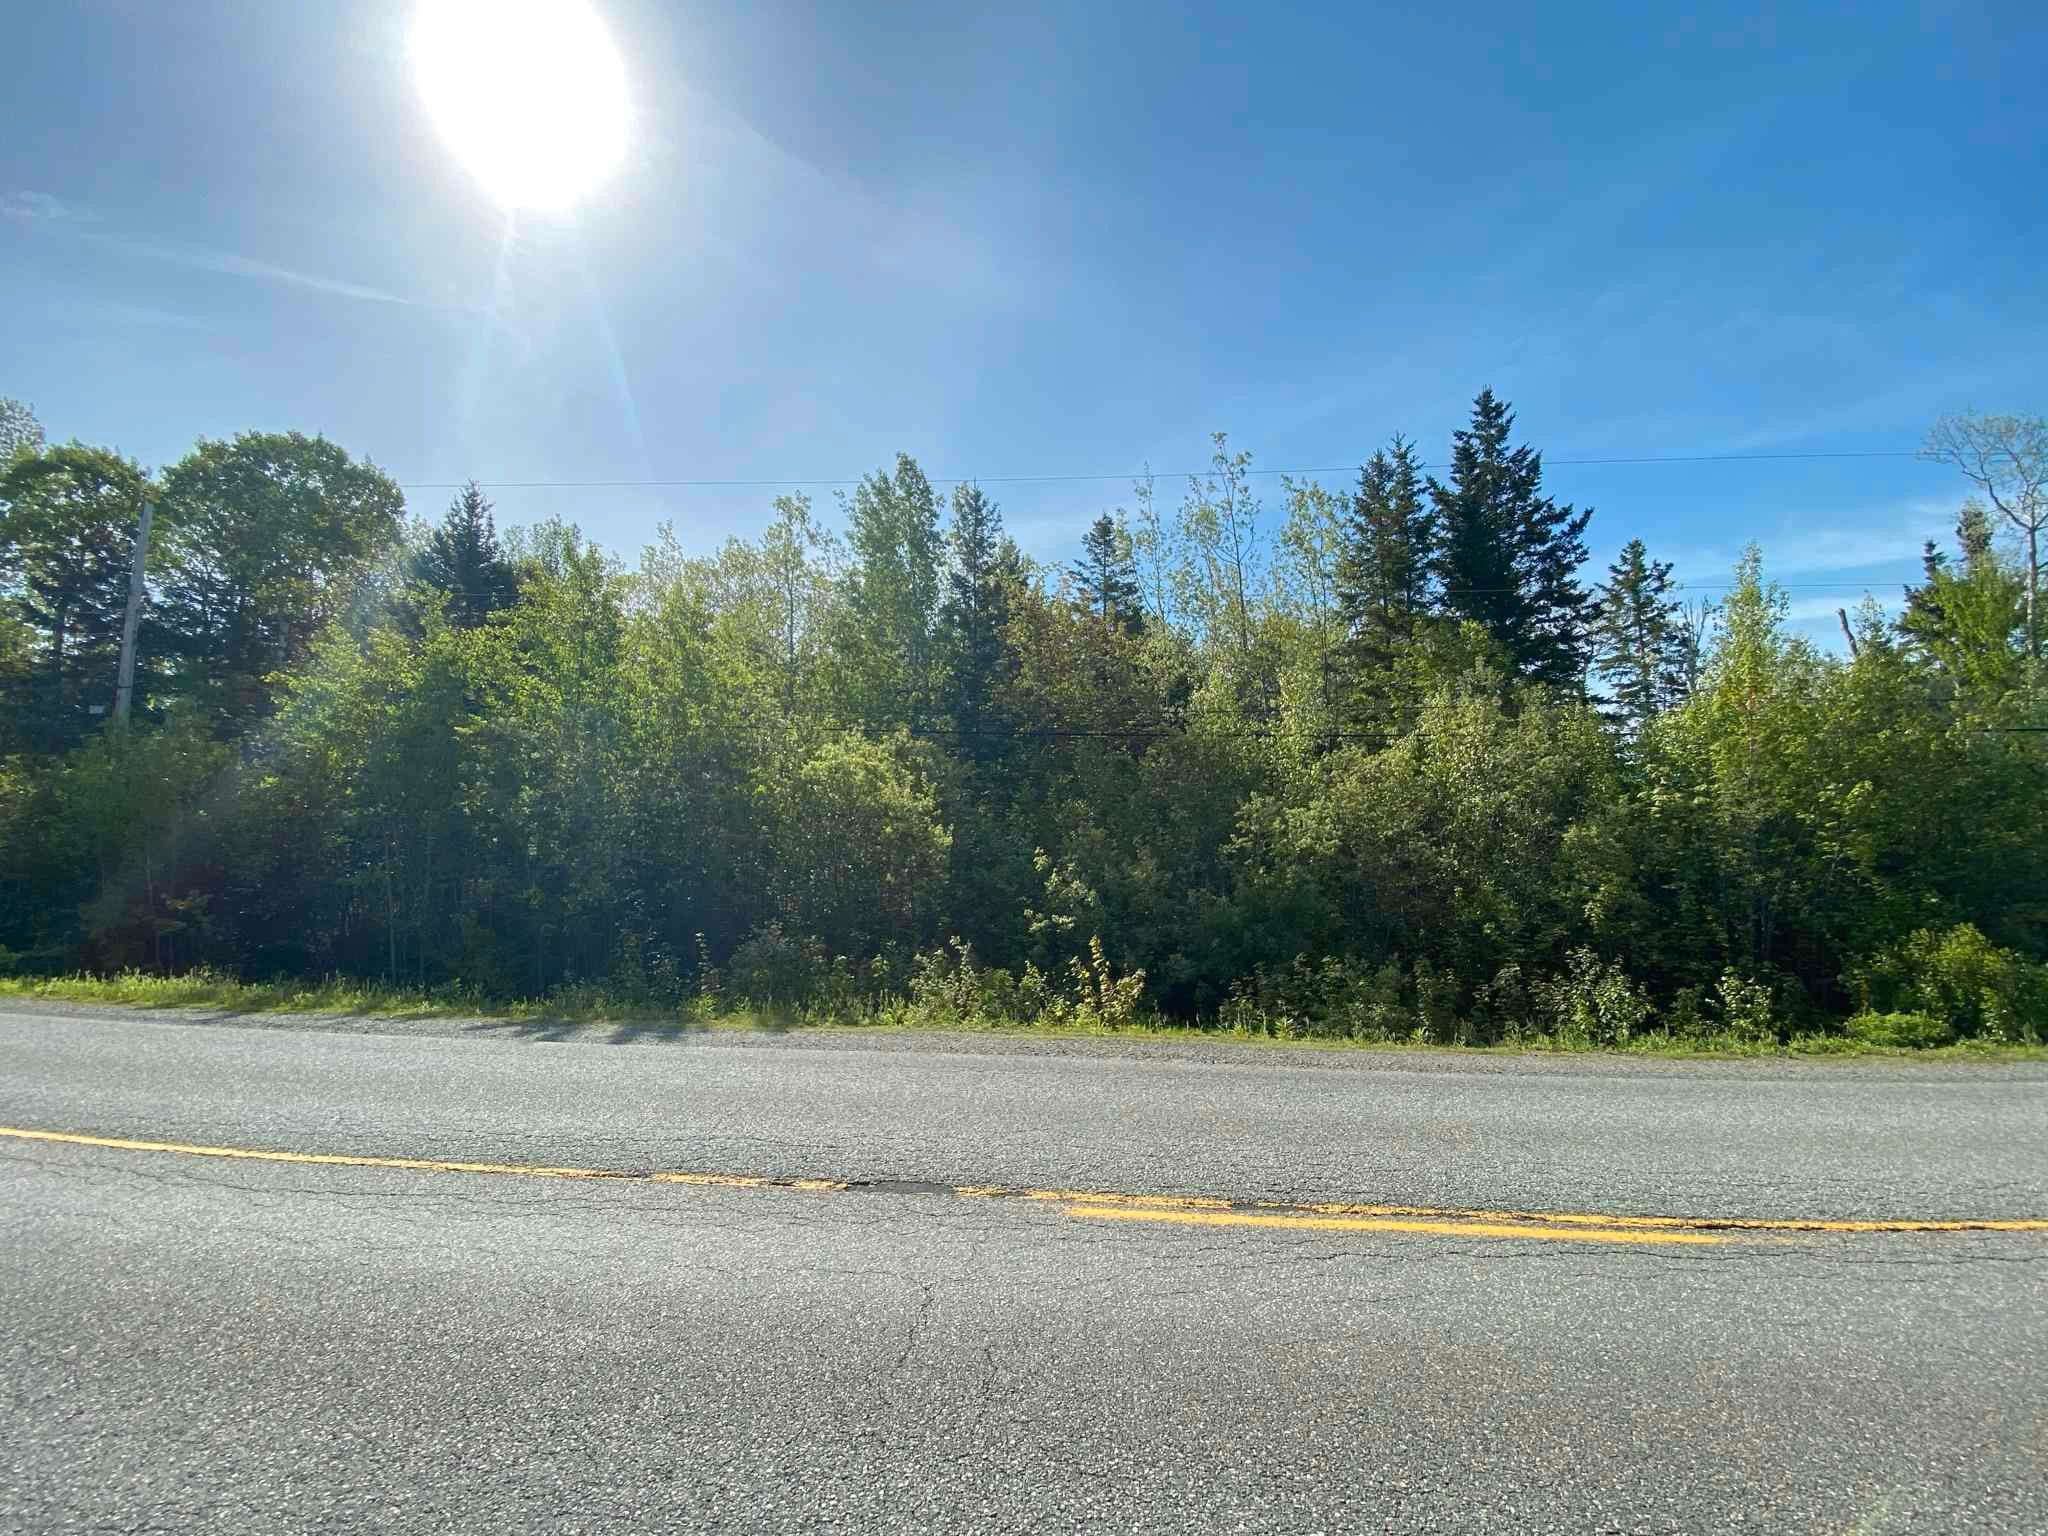 Main Photo: Lot 2 Egypt Road in Little Harbour: 108-Rural Pictou County Vacant Land for sale (Northern Region)  : MLS®# 202117045